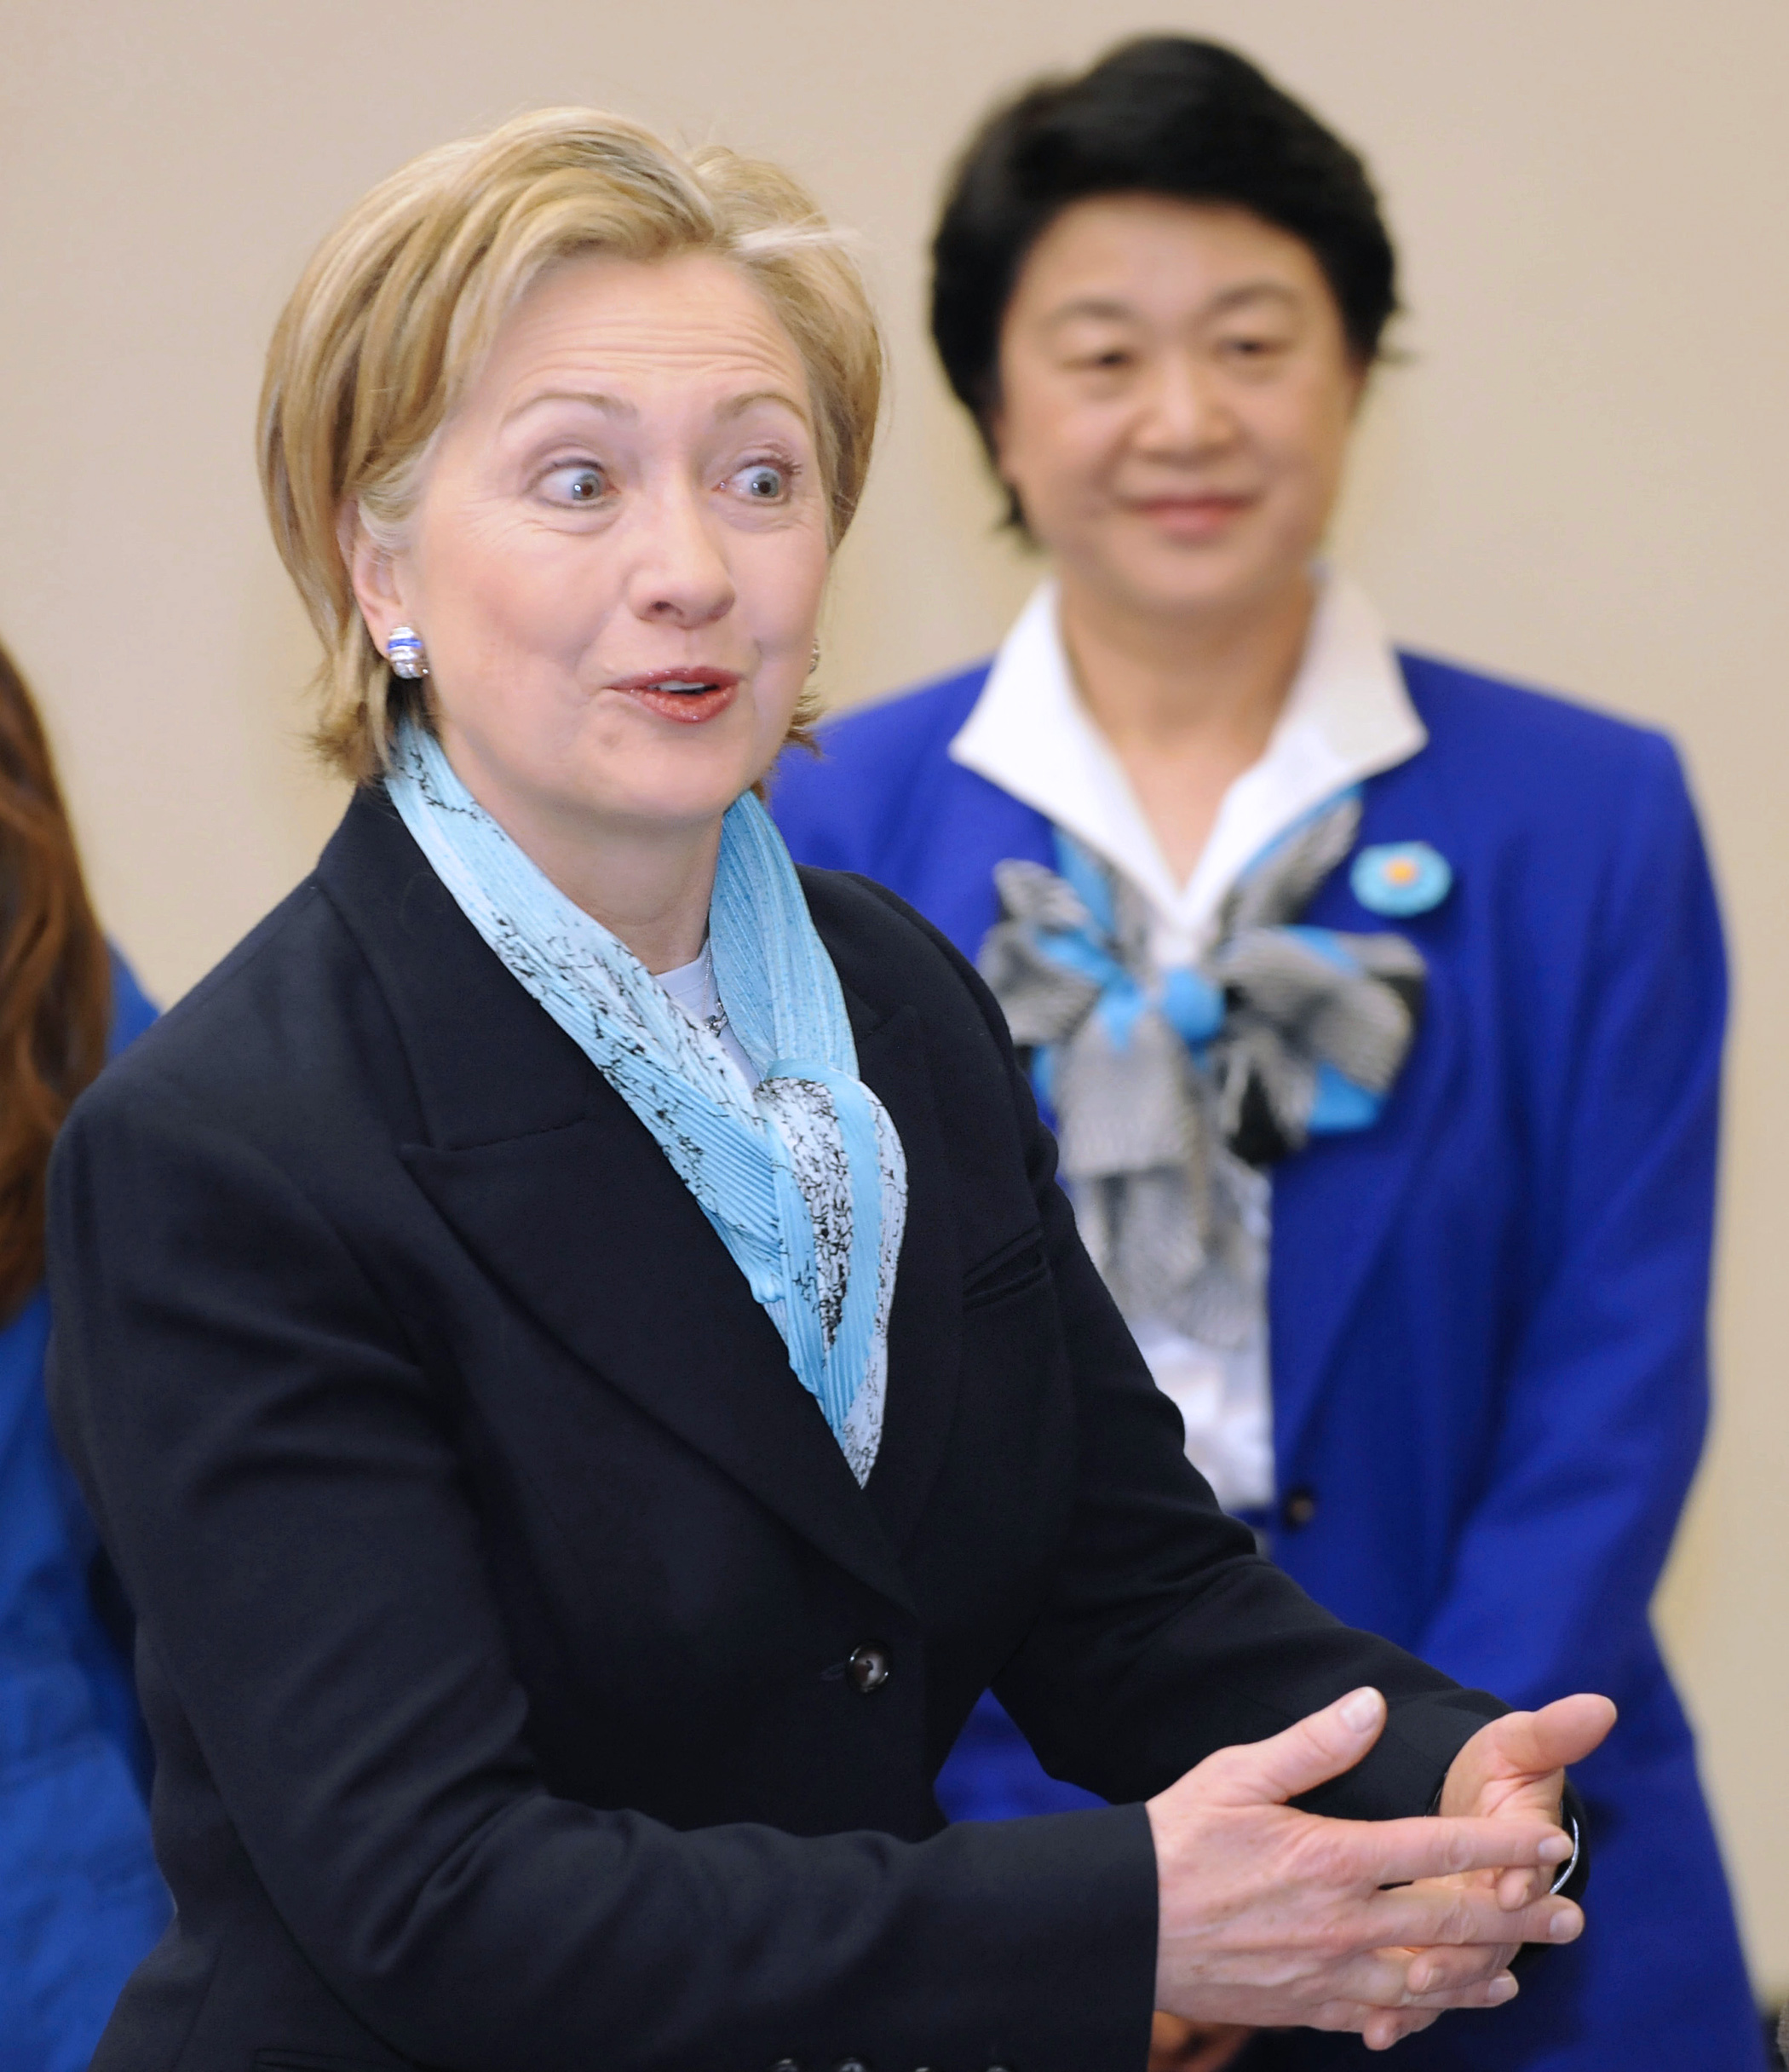 U.S. Secretary of State Hillary Rodham Clinton speaks during a reception after her arrival at Haneda international airport in Tokyo, Japan on Feb. 16....